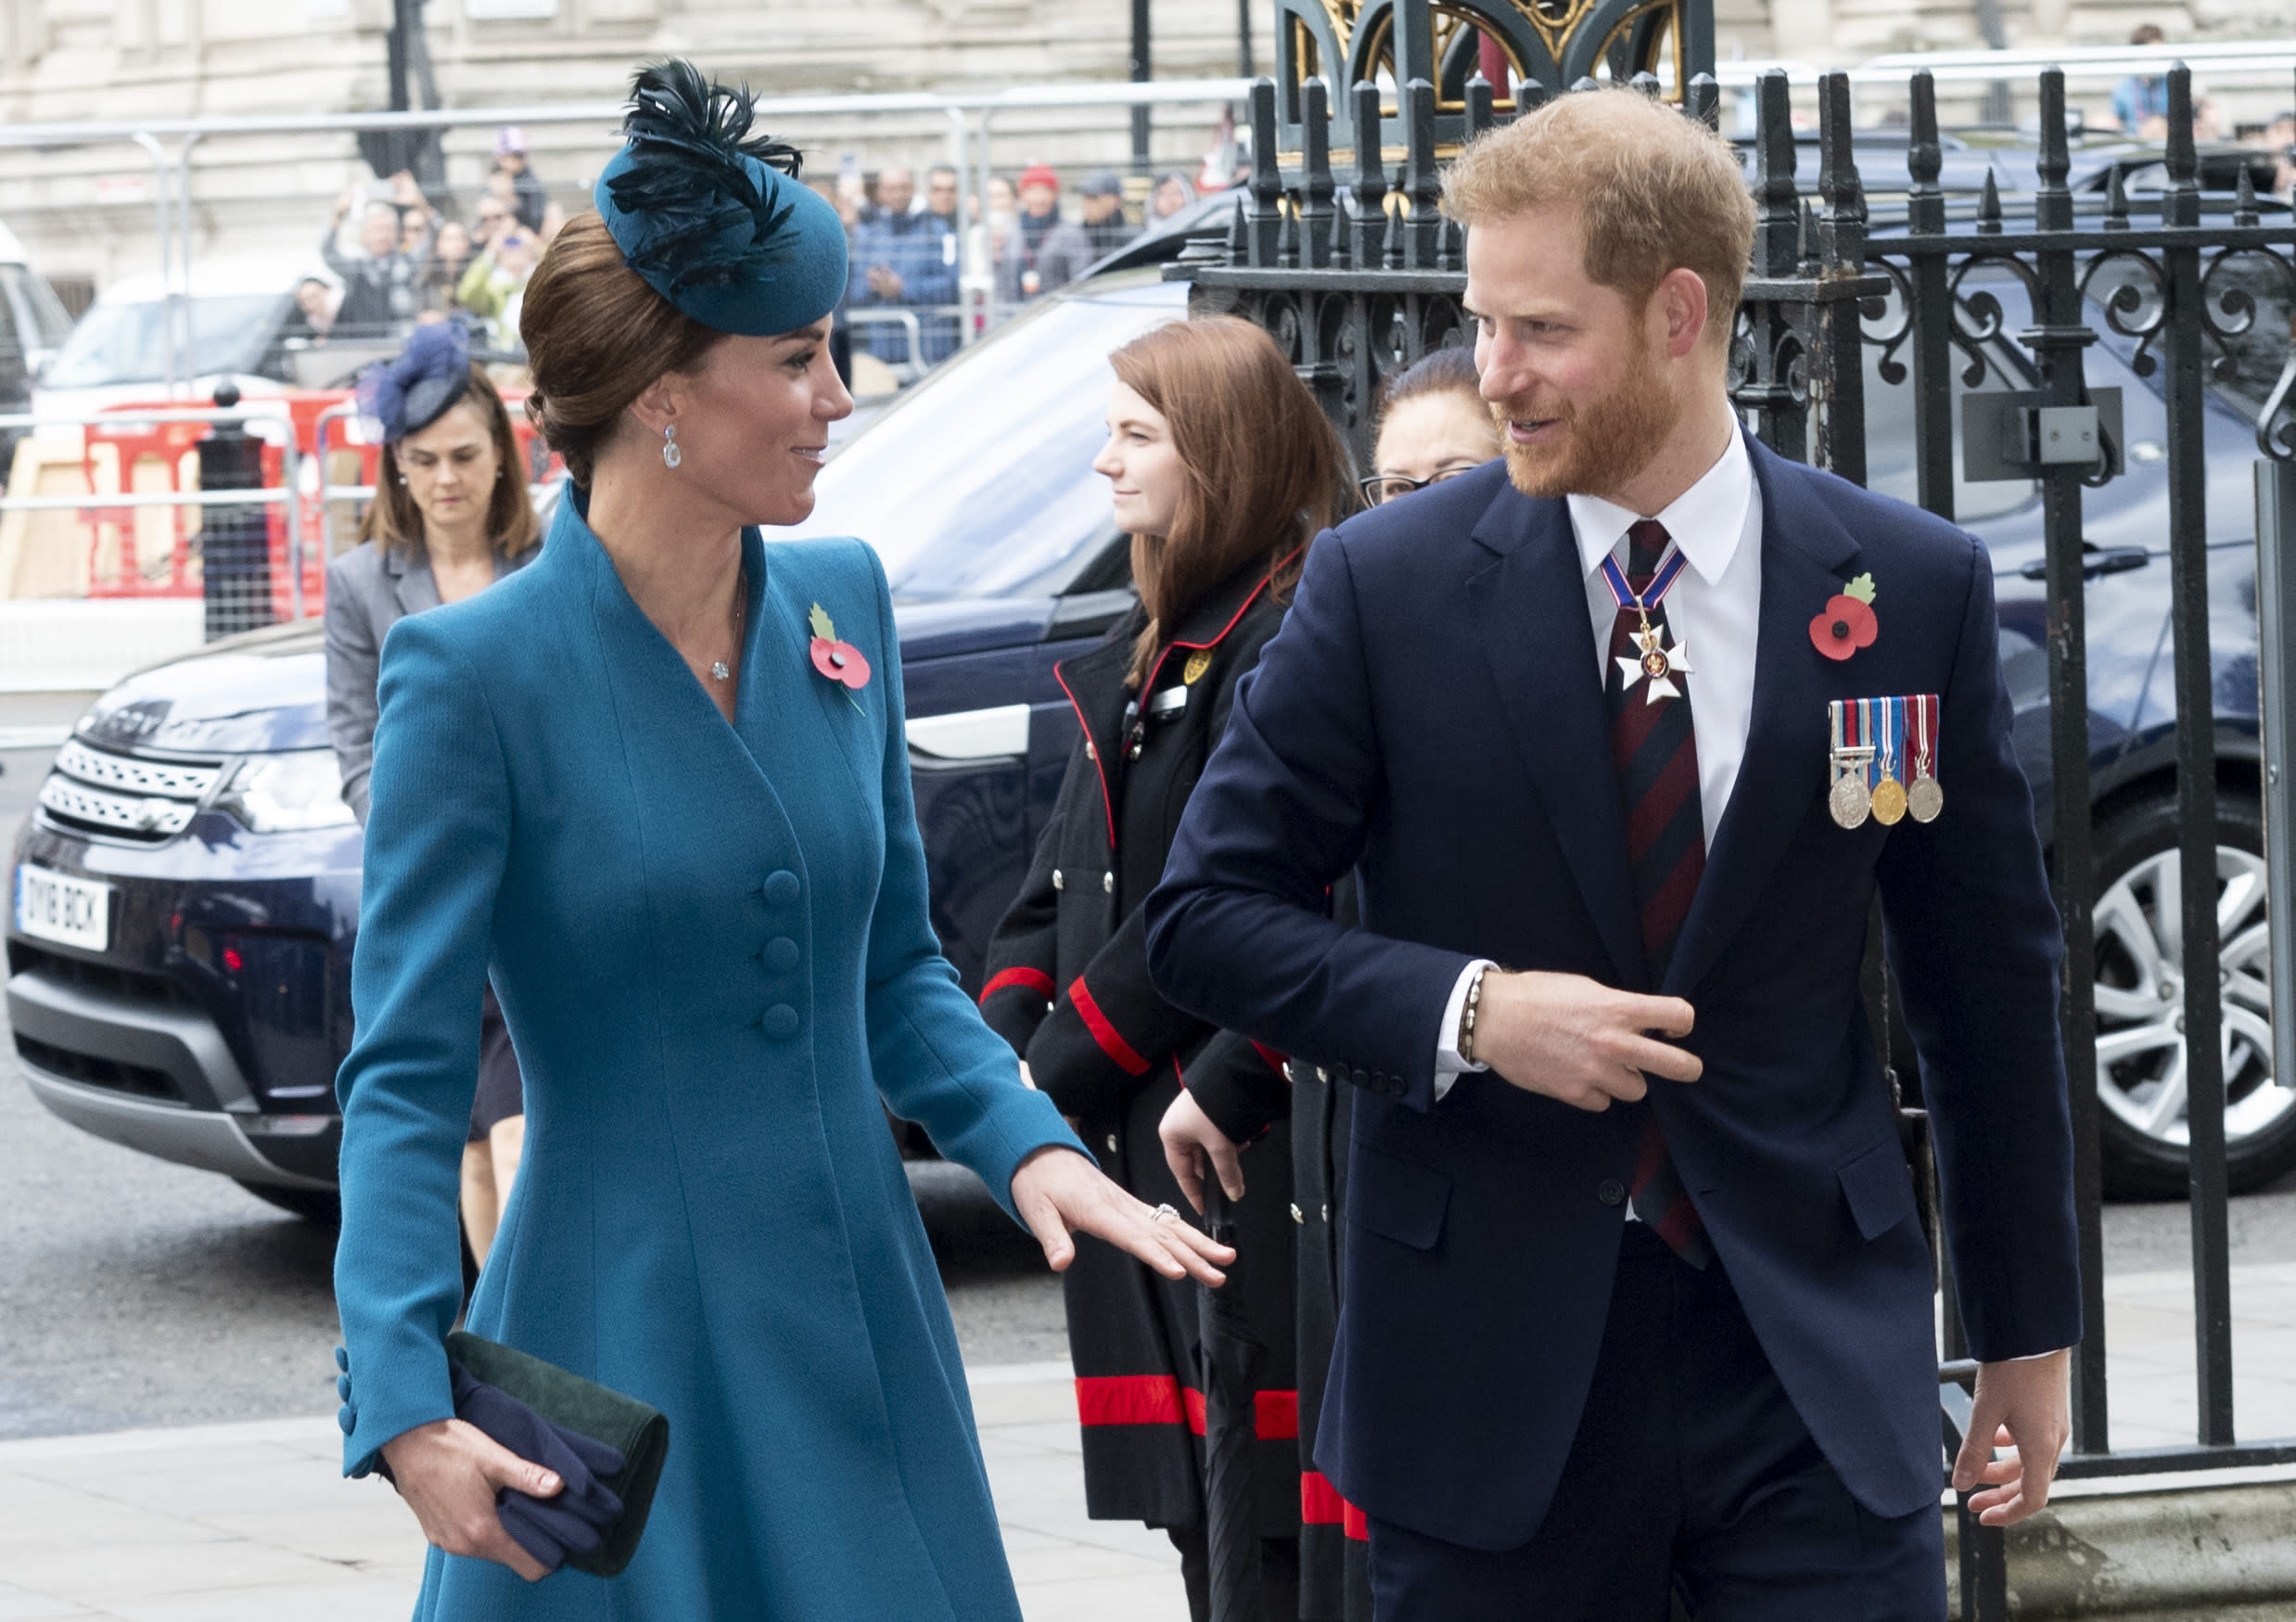 LONDON, ENGLAND - APRIL 25: Catherine, Duchess of Cambridge and Prince Harry, Duke of Sussex attend the ANZAC Day Service of Commemoration and Thanksgiving at Westminster Abbey on April 25, 2019 in London, United Kingdom. (Photo by Mark Cuthbert/UK Press via Getty Images)